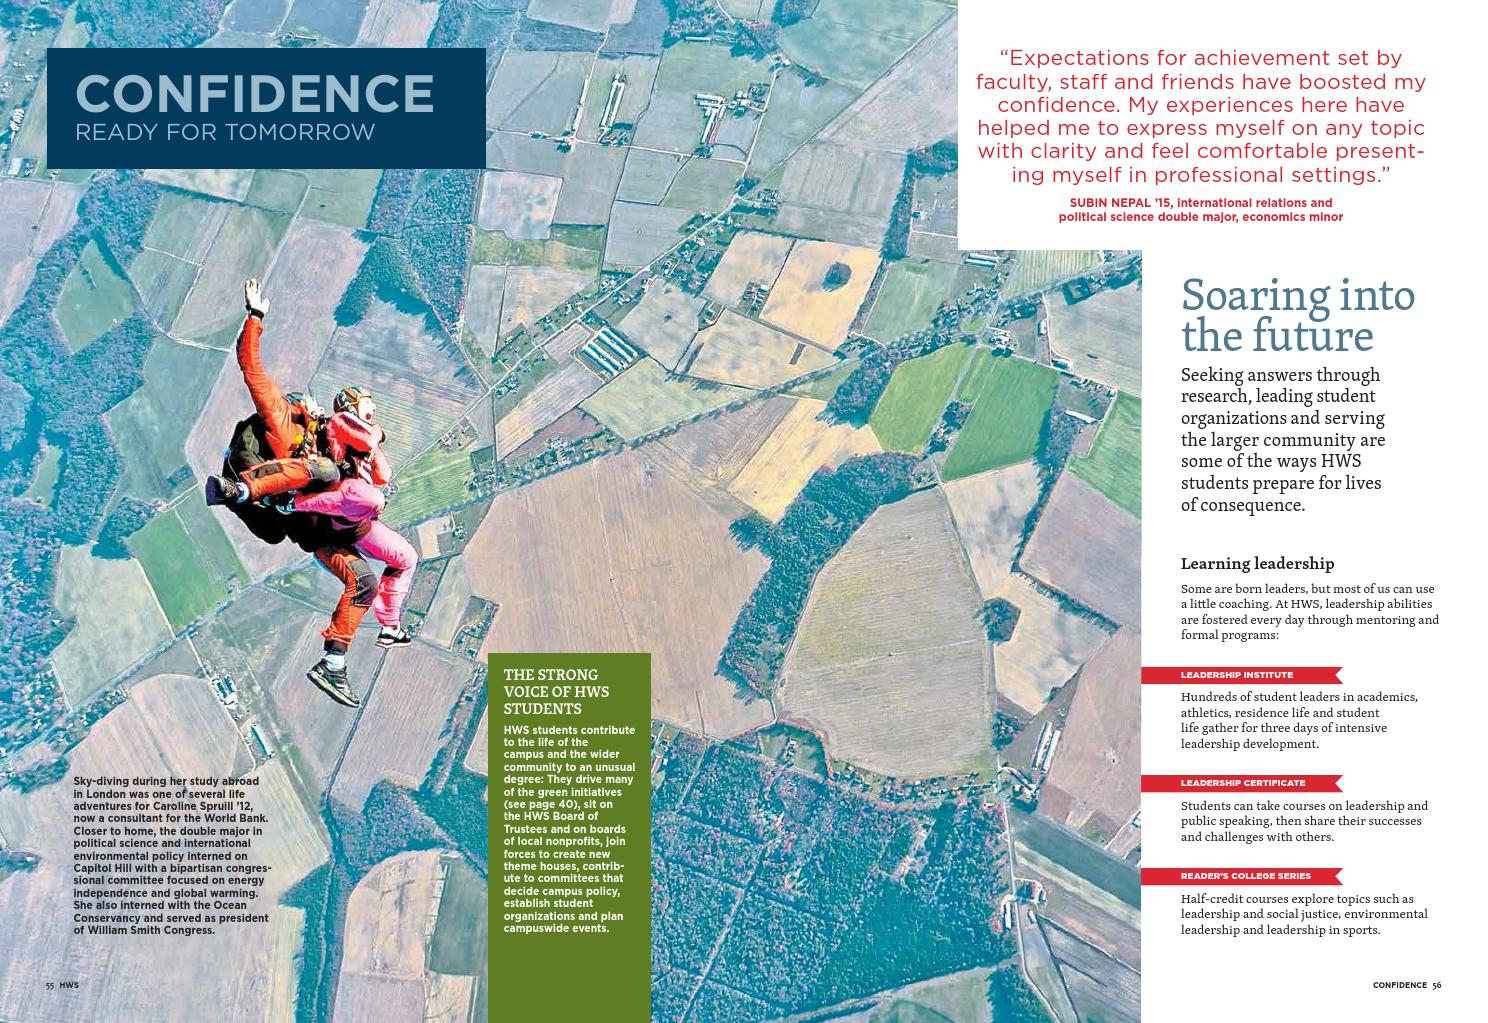 Hws Viewbook 2015 By Hobart And William Smith Colleges Issuu